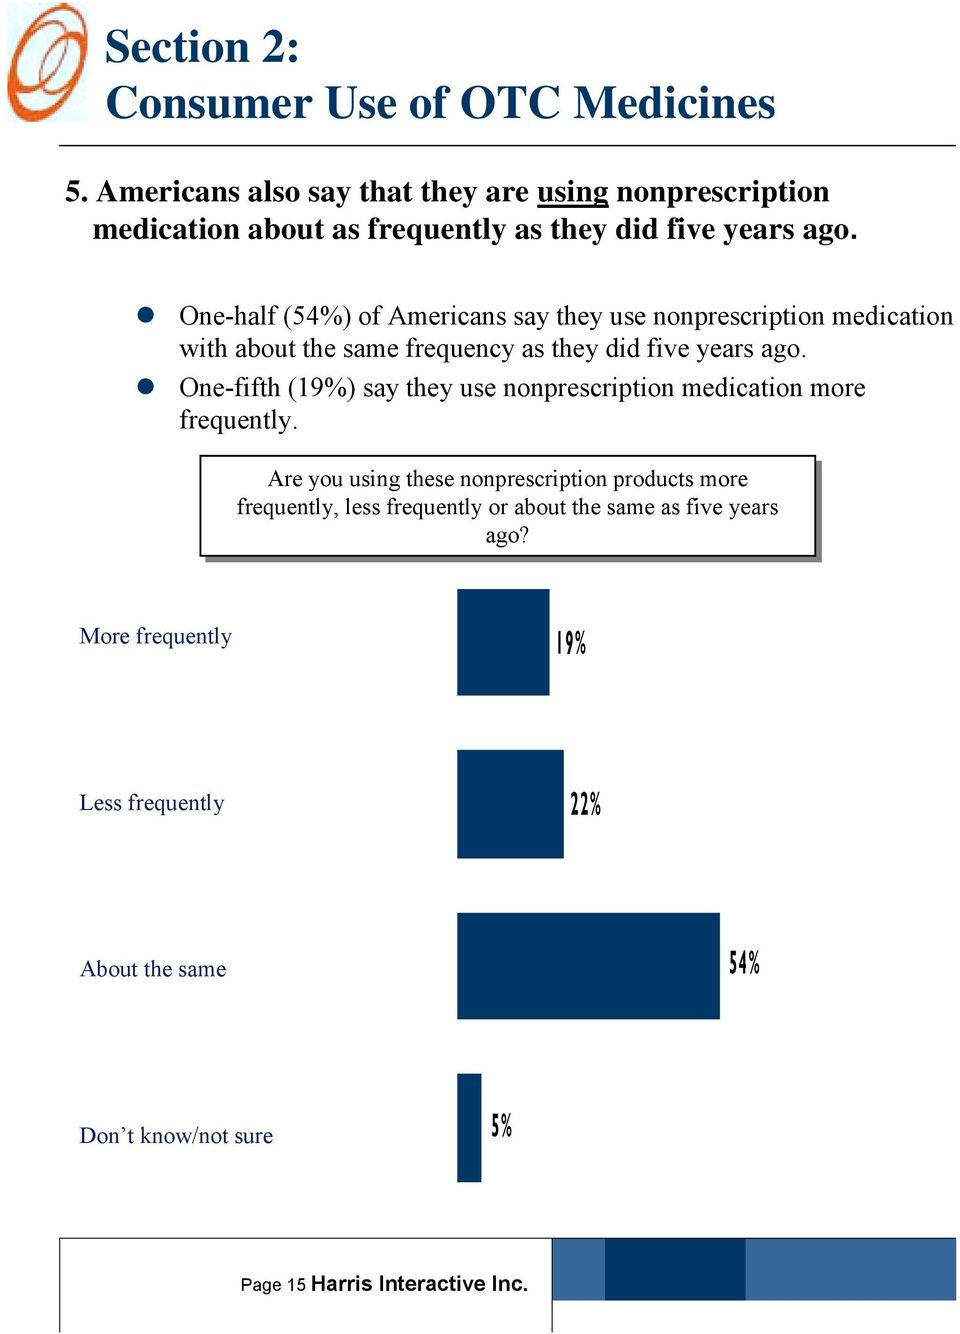 """ One-half (54%) of Americans say they use nonprescription medication with about the same frequency as they did five years ago."